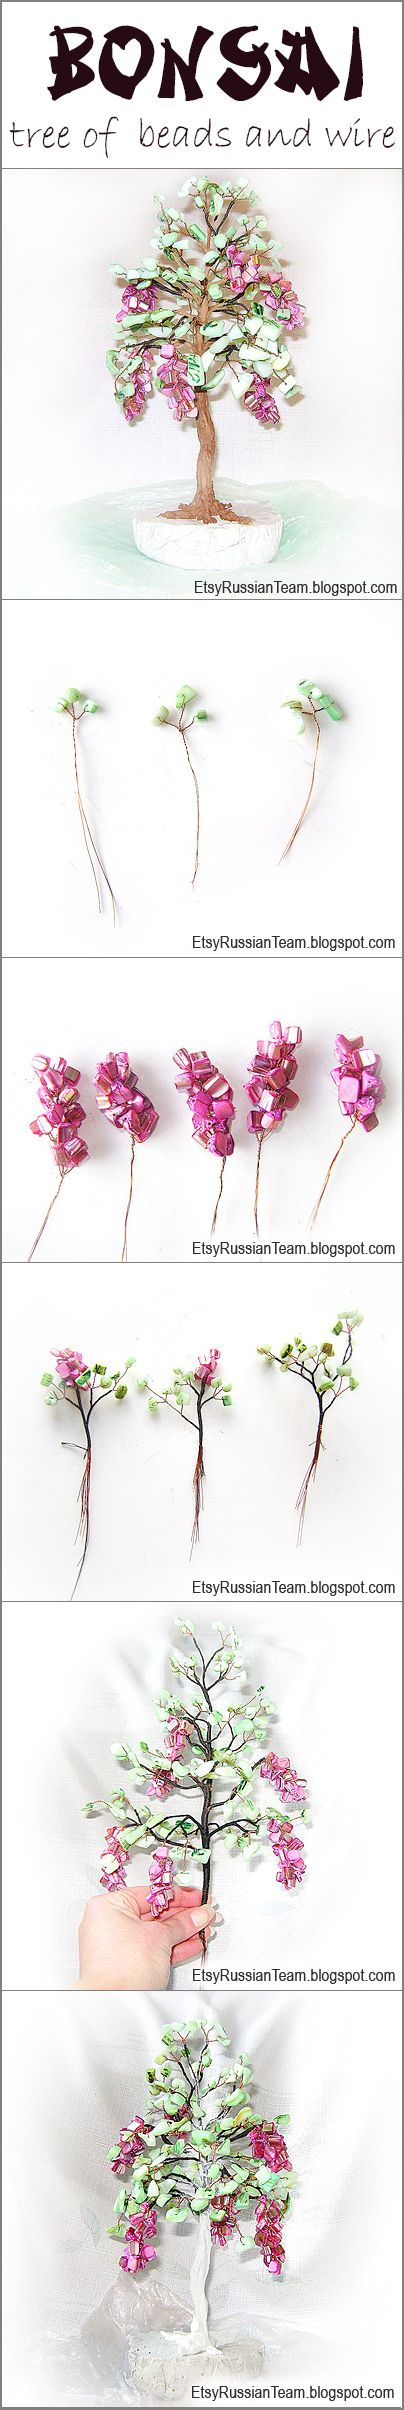 Bonsai tree of mother-of-pearl beads and wire DIY tutorial  Click for step by step instructions http://etsyrussianteam.blogspot.co.il/2013/01/tutorial-of-bonsai-tree-of-beads-and.html